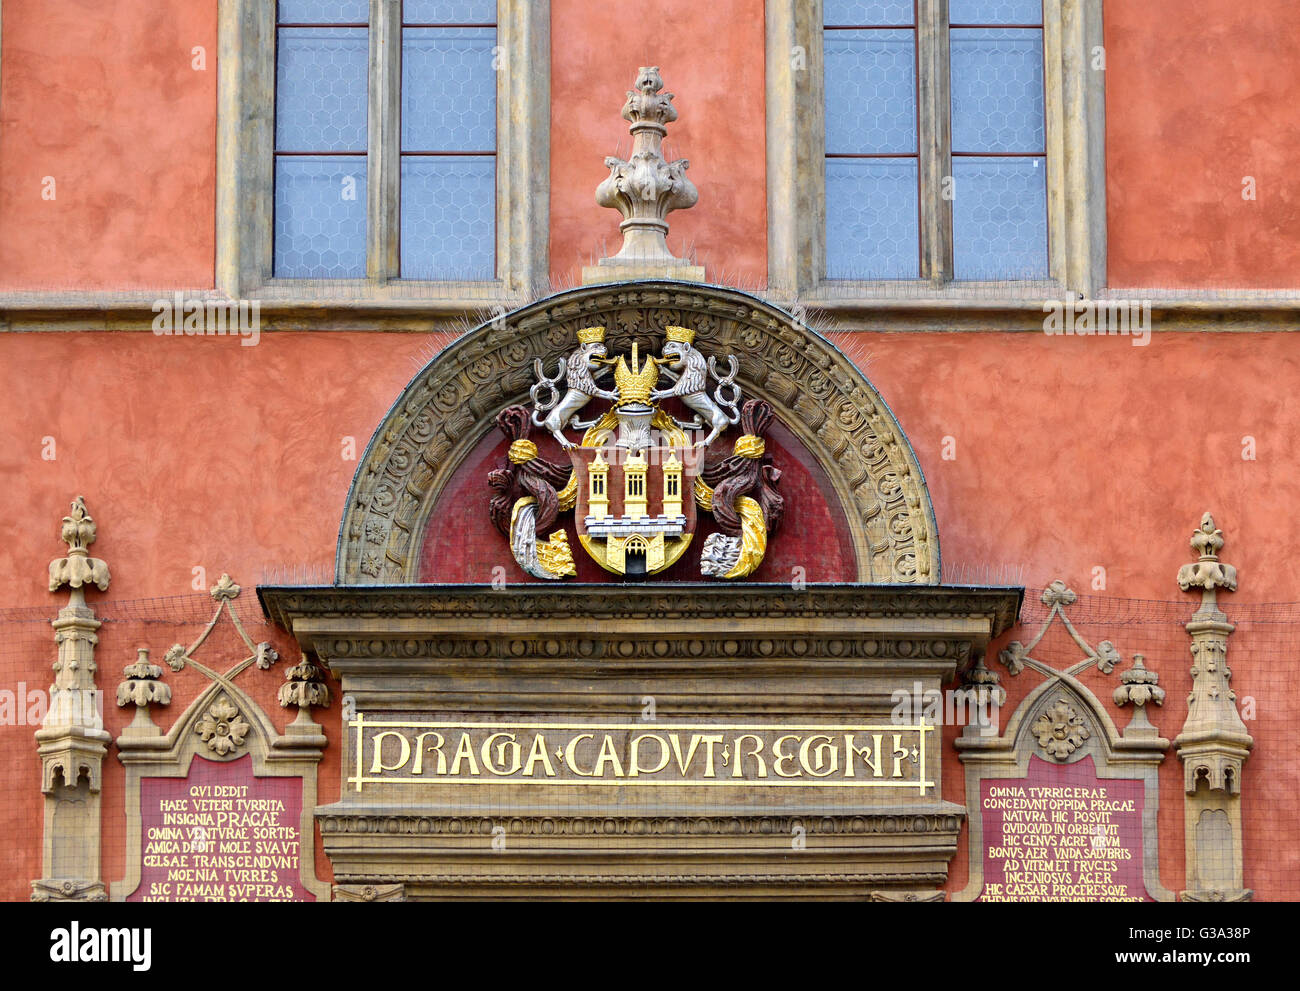 Prague, Czech Republic. Staromestske namesti / Old Town Square. Detail above doorway of the Old Town Hall - Staromestske - Stock Image